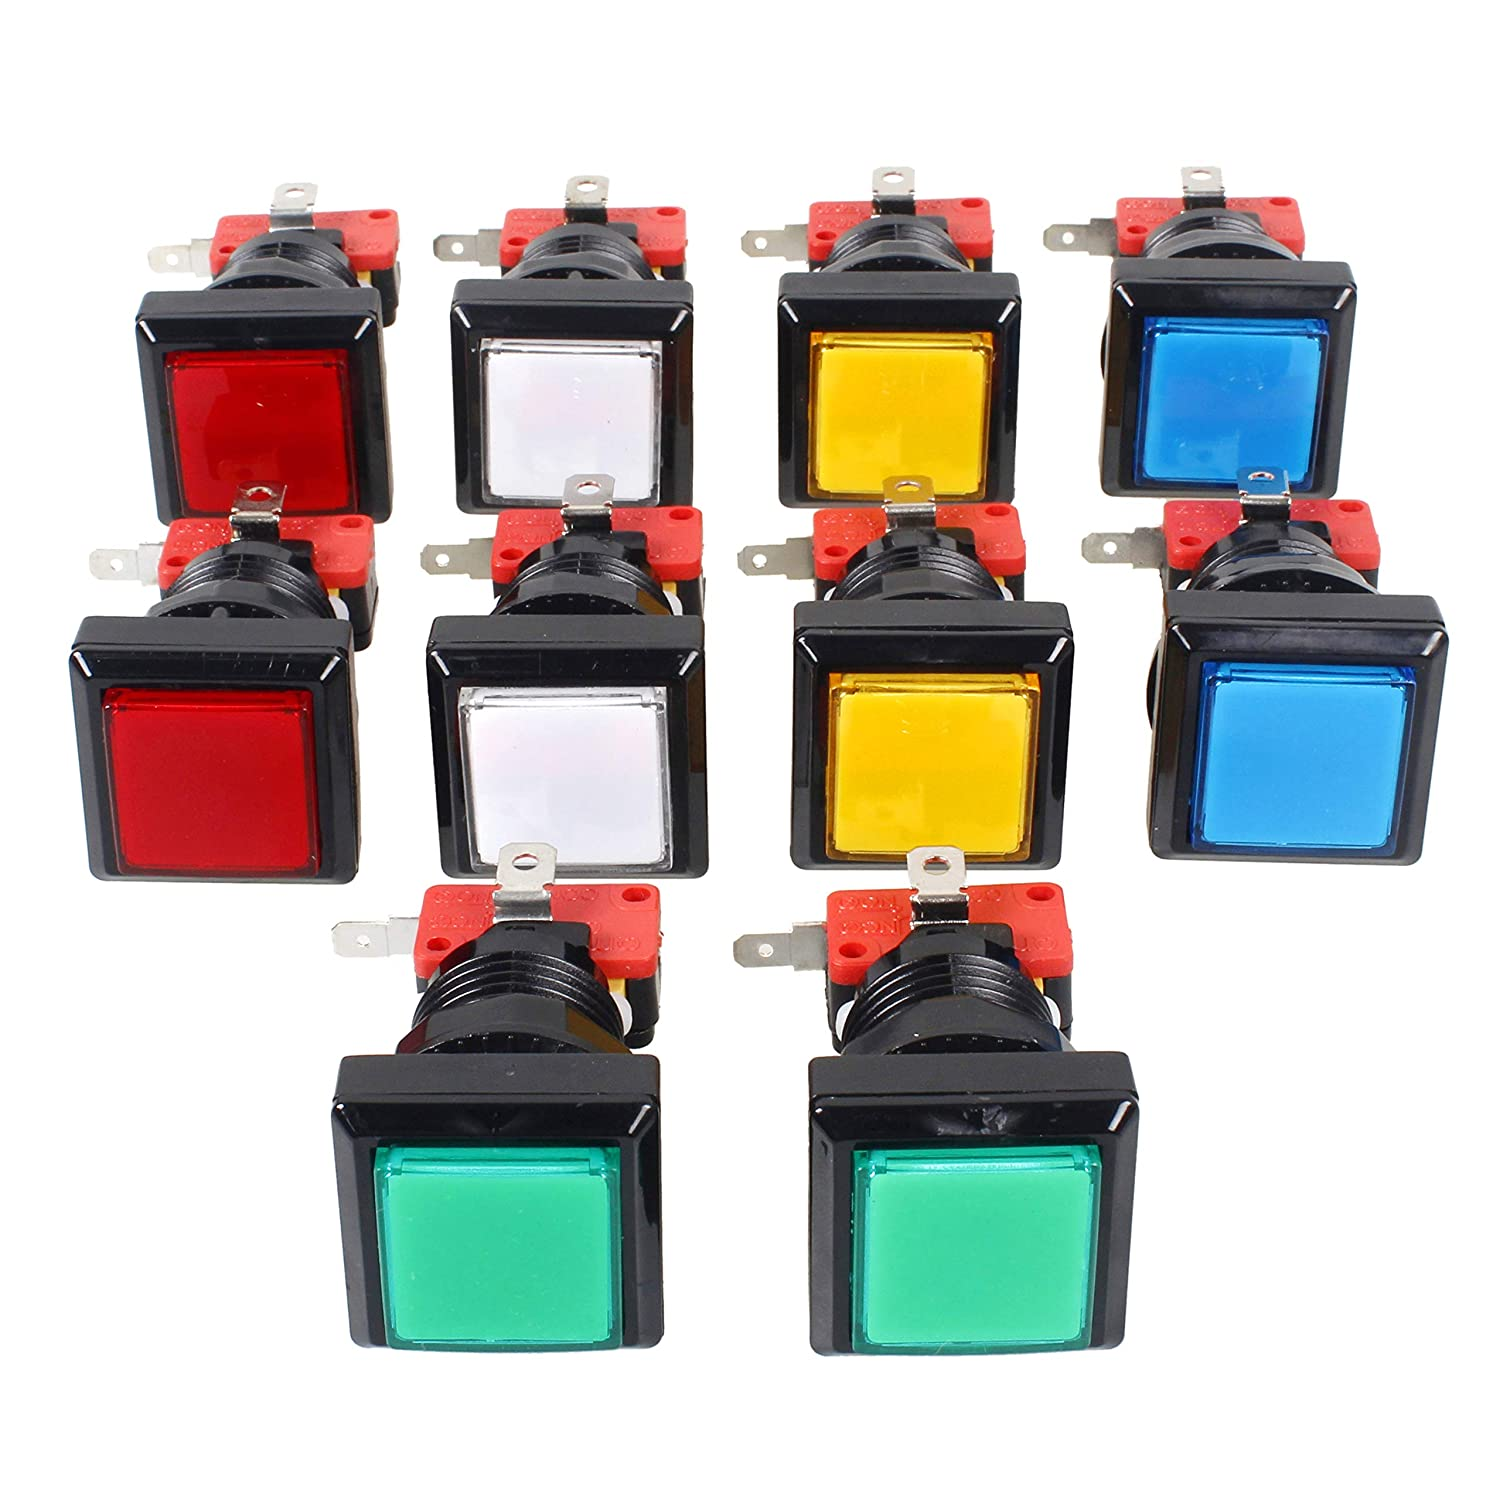 EG Starts 10x Arcade Square Shape LED Illuminated Push Button With Micro Switch For Arcade Machine Gaming Video Game Consoles Jamma Kit Parts 12V Lamp 33mm Buttons ( Each Color of 2 Piece )